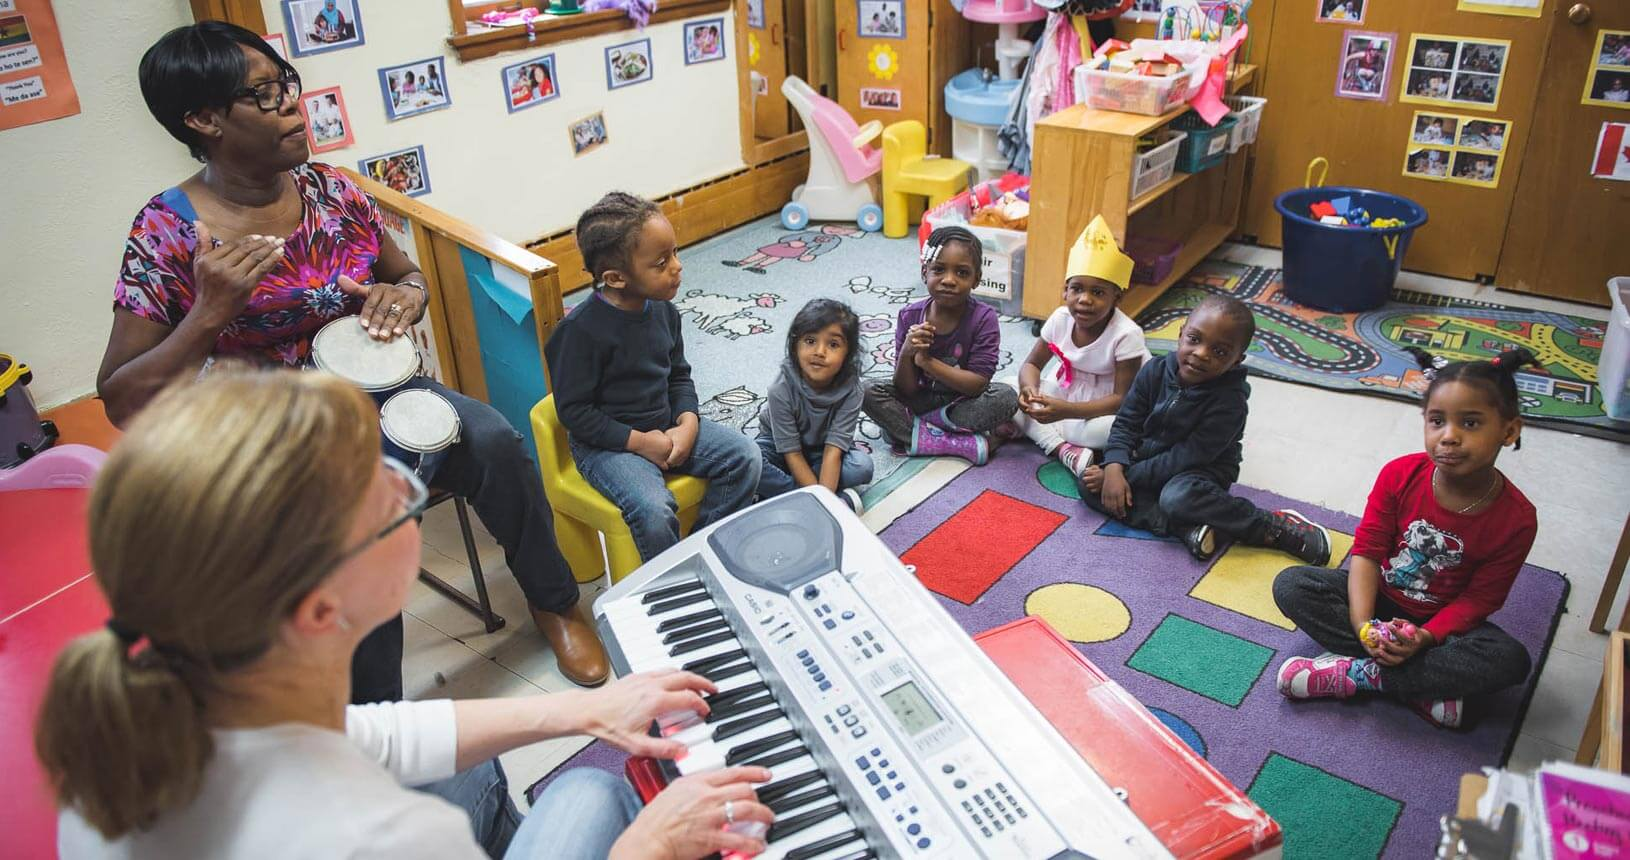 Two woman, one with a drum and the other with a keyboard, are teaching music class to six children sitting on the floor